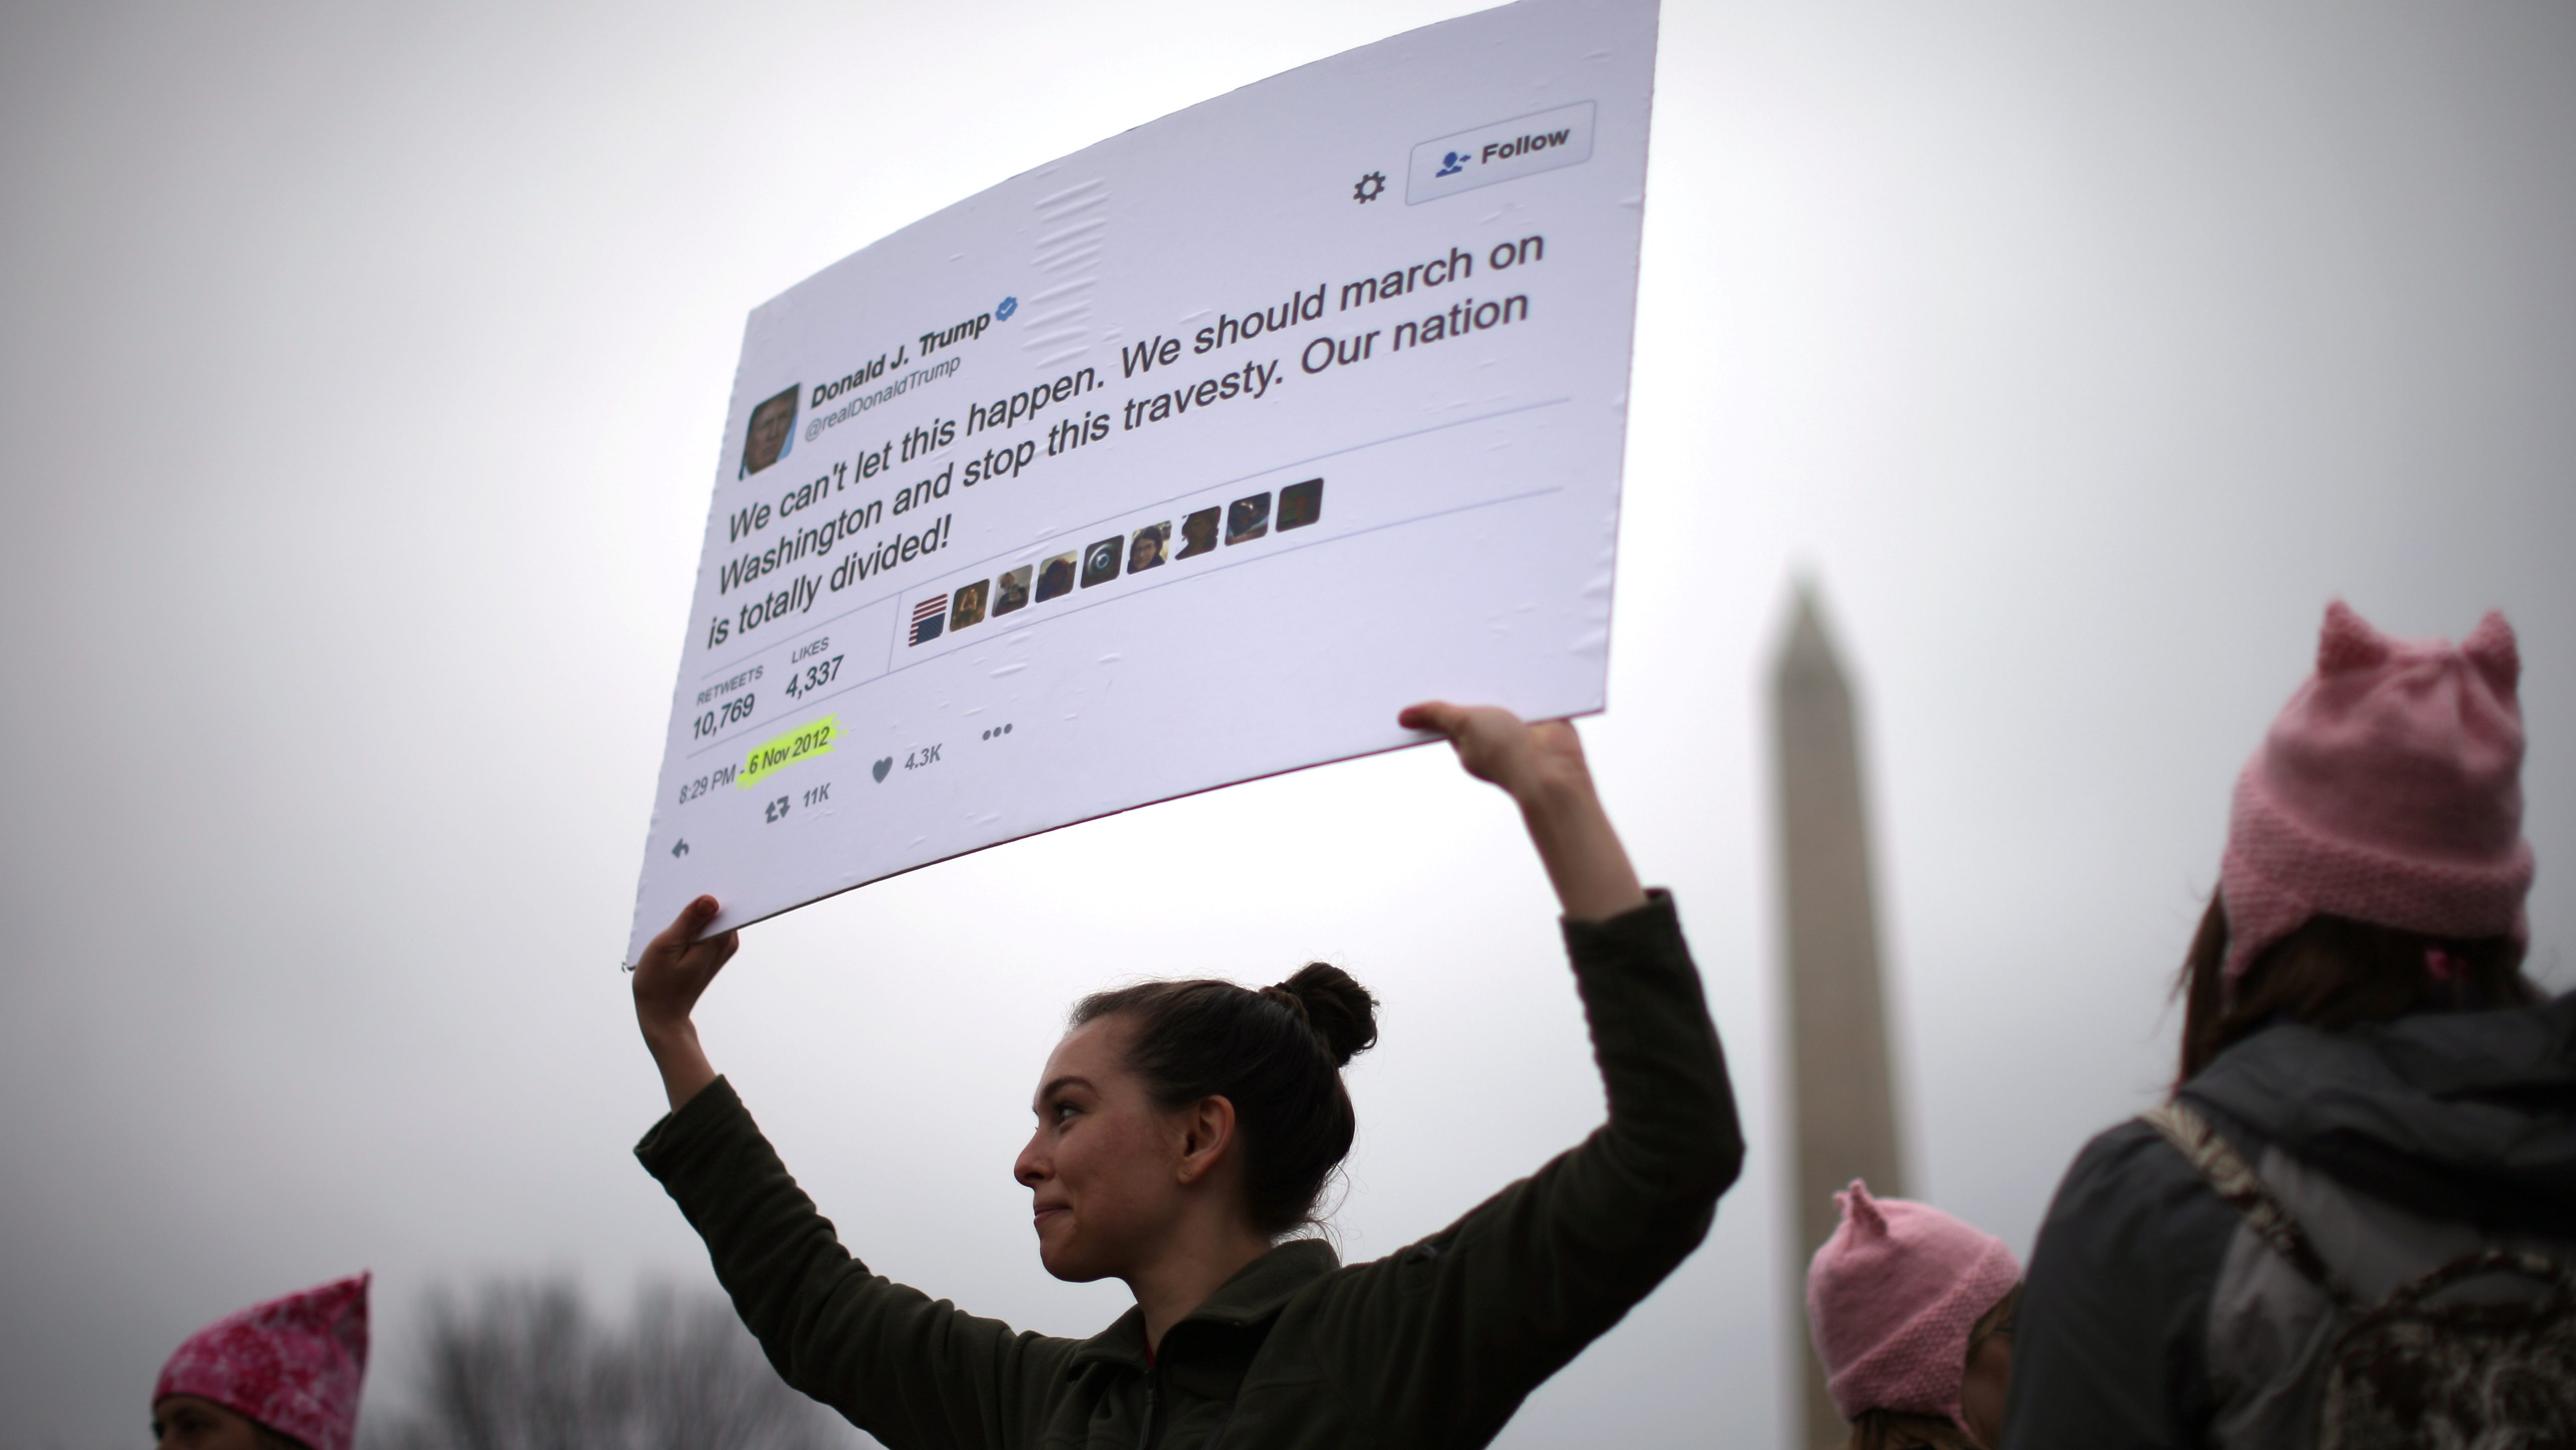 Marianne Nepsund, 29, from New York, holds a sign displaying one of U.S. President Donald Trump's tweets as she participates in the Women's March on Washington, following the inauguration of President Trump, in Washington, D.C., U.S., January 21, 2017.